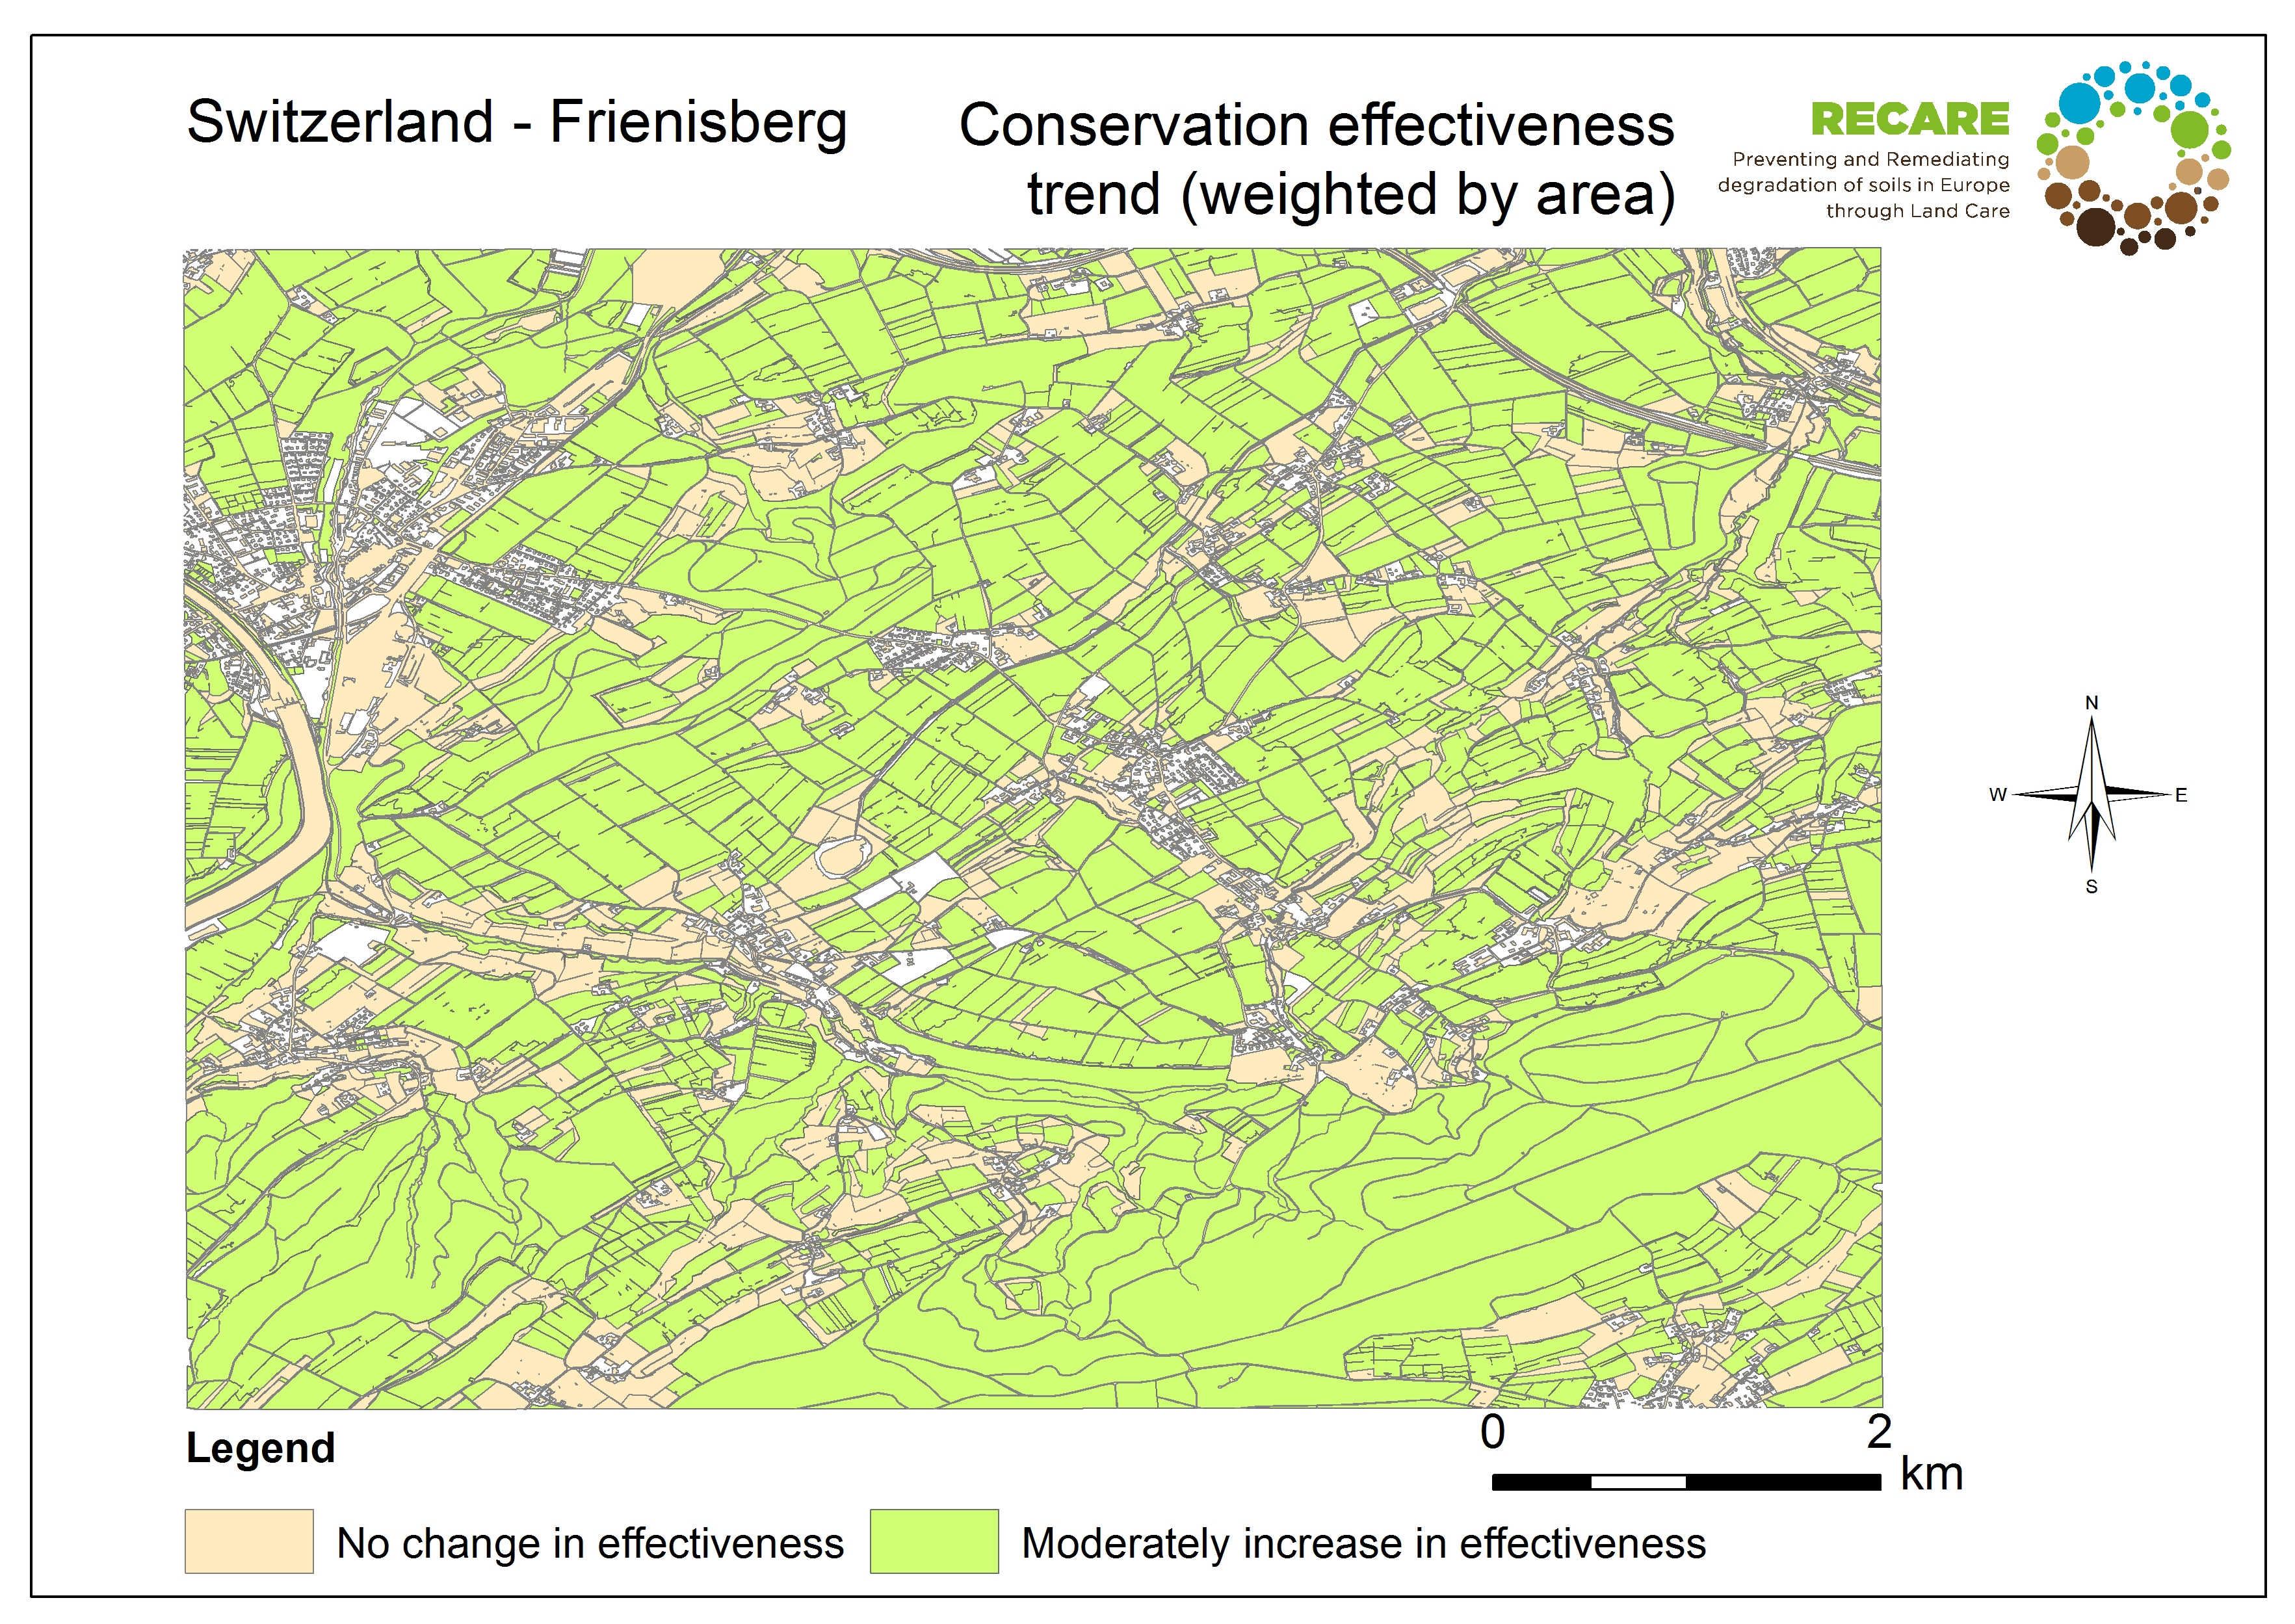 Switzerland Frienisberg conservation effectiveness trend